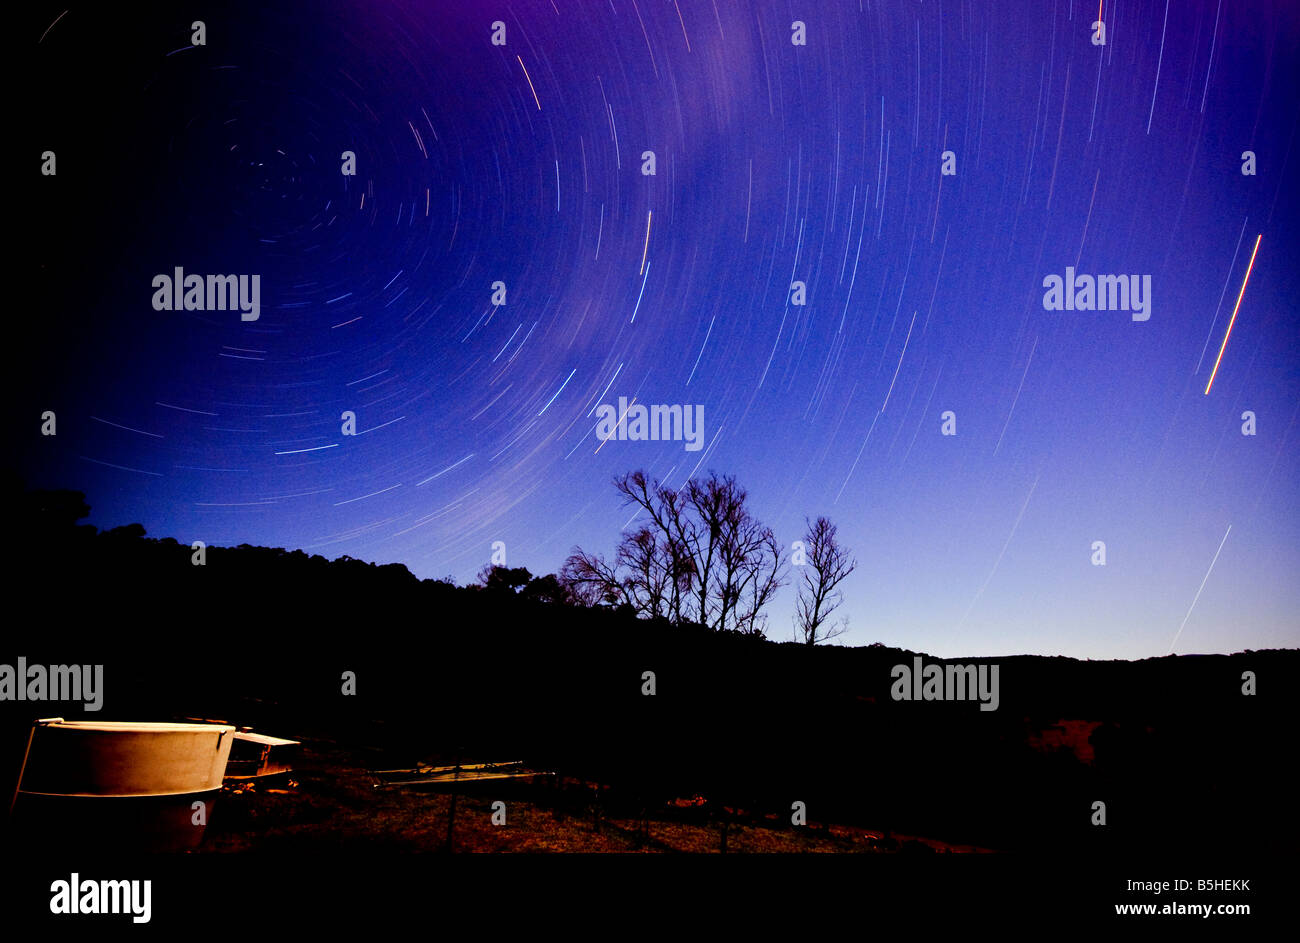 Night shot of star trails over the range at Towamba New South Wales Australia. Please note: includes some noise. - Stock Image